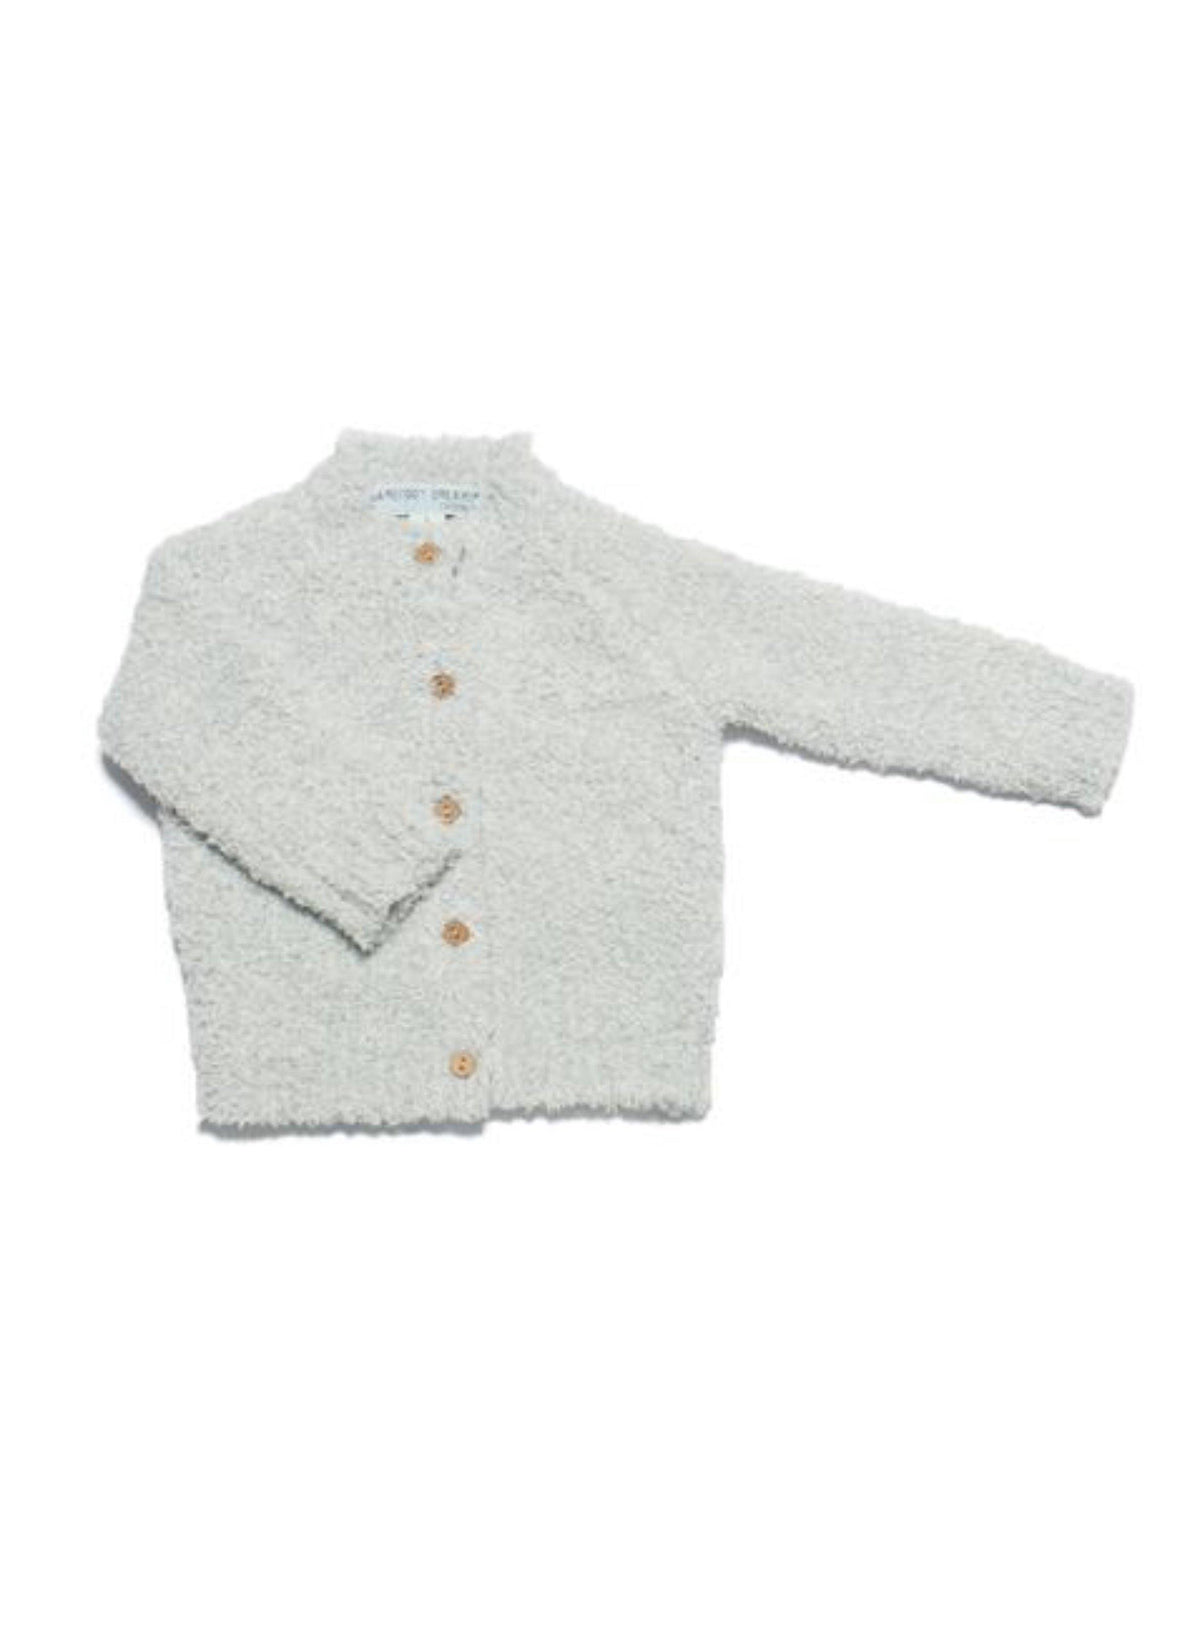 Infant CozyChic Heathered Cardi - Wheat Boutique